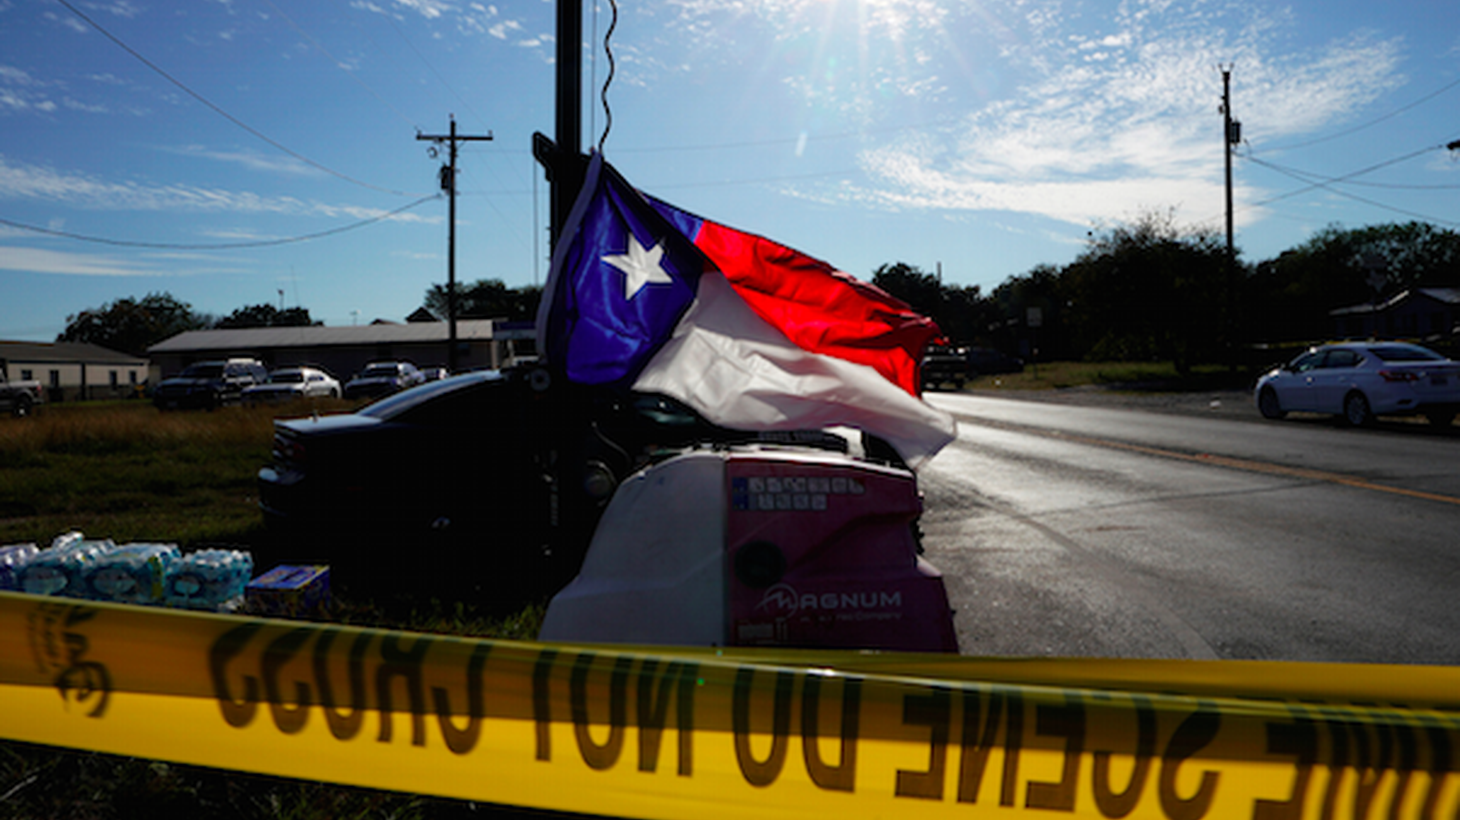 As law enforcement tries to figure out what led to Sunday's attack at a Baptist church in rural Texas, debate continues over how to prevent mass shootings? In more than half of mass shootings, one of the victims was an intimate partner or relative of the shooter. In the Texas case, the shooter was court-martialed for abusing his wife and child. And he sent threatening text messages to his mother-in-law, who attended the church.